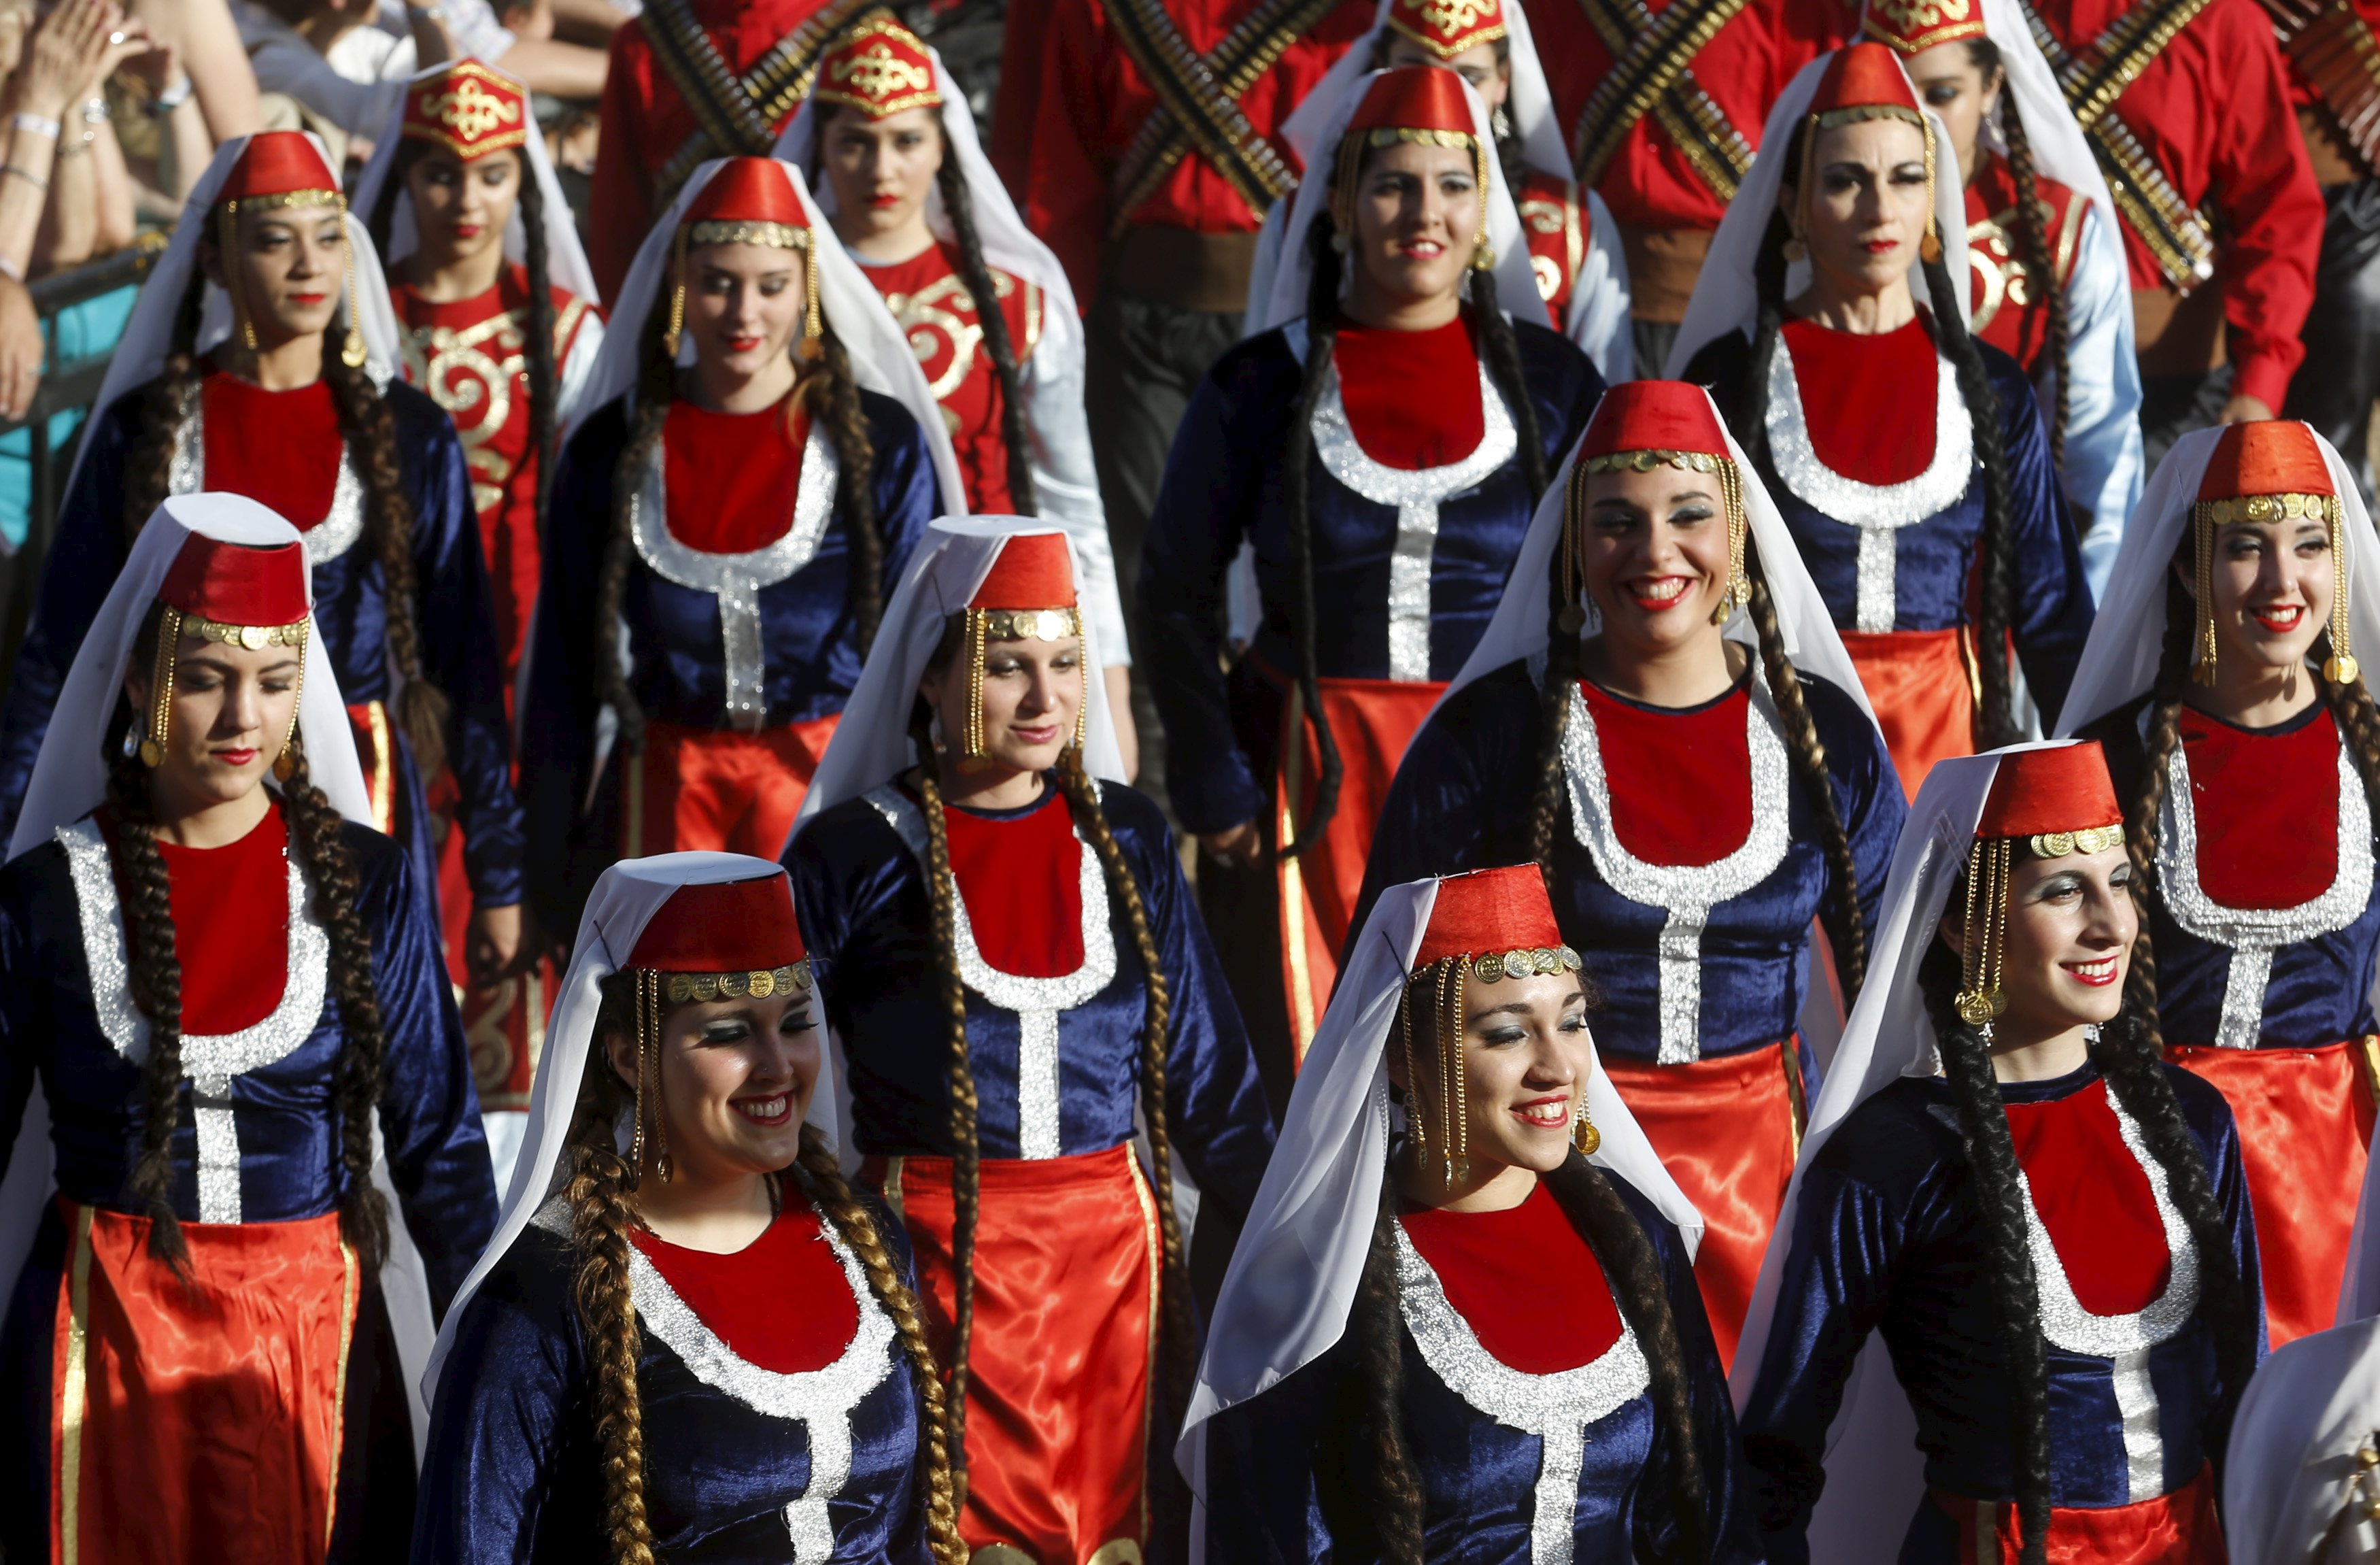 Members of the Armenian community in Argentina in cultural costume parade in Buenos Aires during a commemoration marking the 100th anniversary of the mass killing of Armenians by Ottoman Turks, April 25. Enrique Marcarian / Reuters.